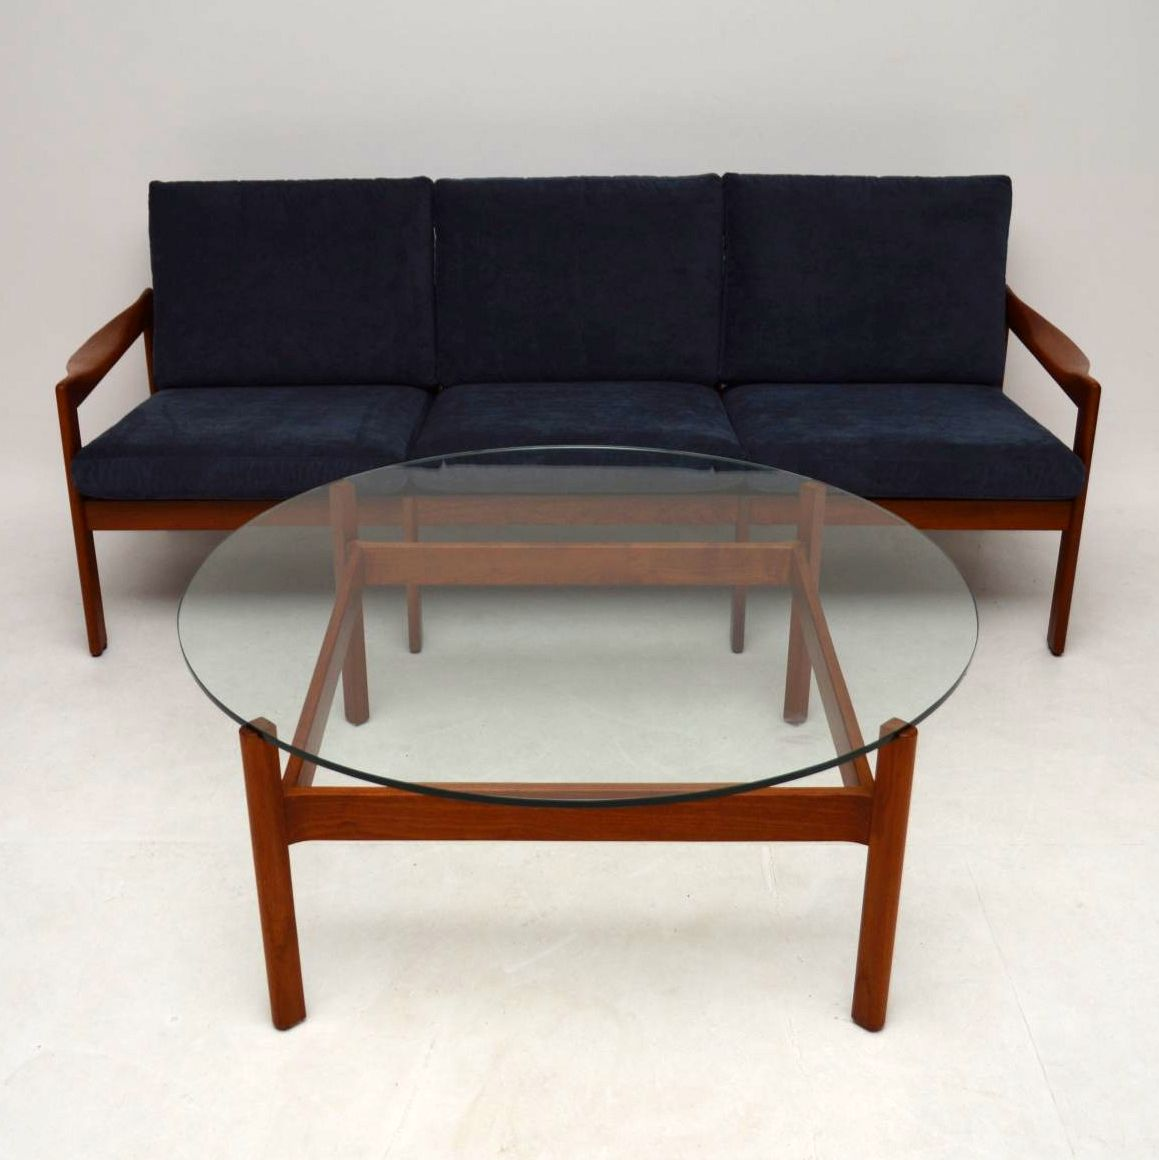 Second Hand Teak Coffee Table: 1960's Danish Teak Coffee Table By Illum Wikkelso